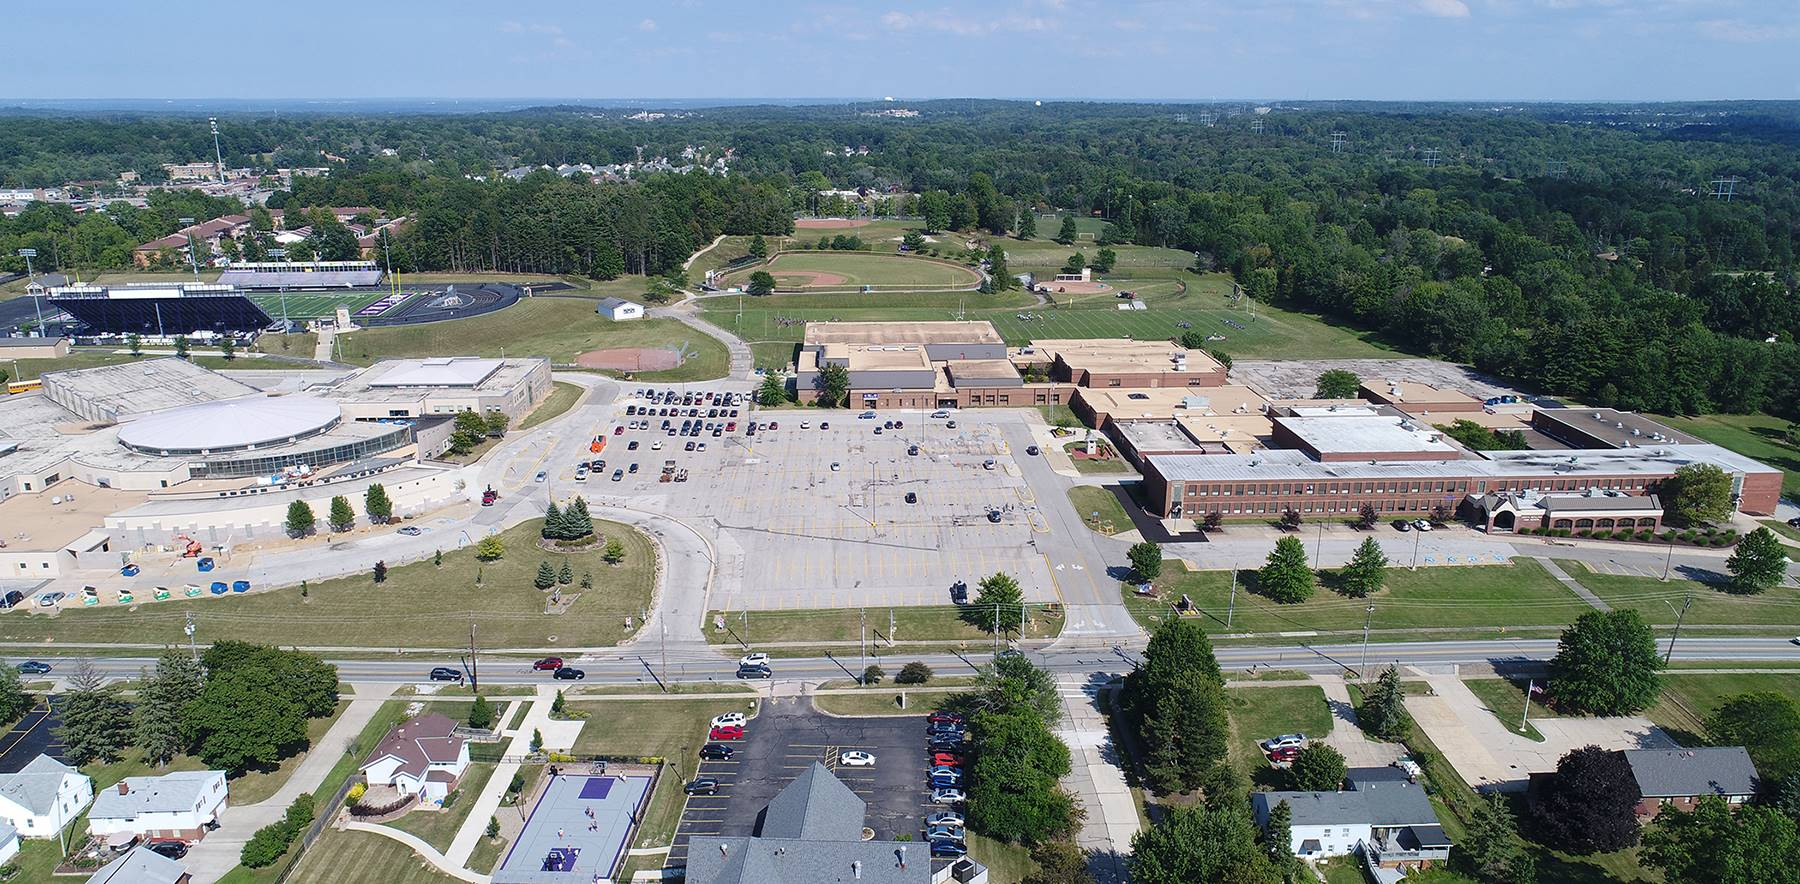 North Royalton Middle/High School Campus - July 2017